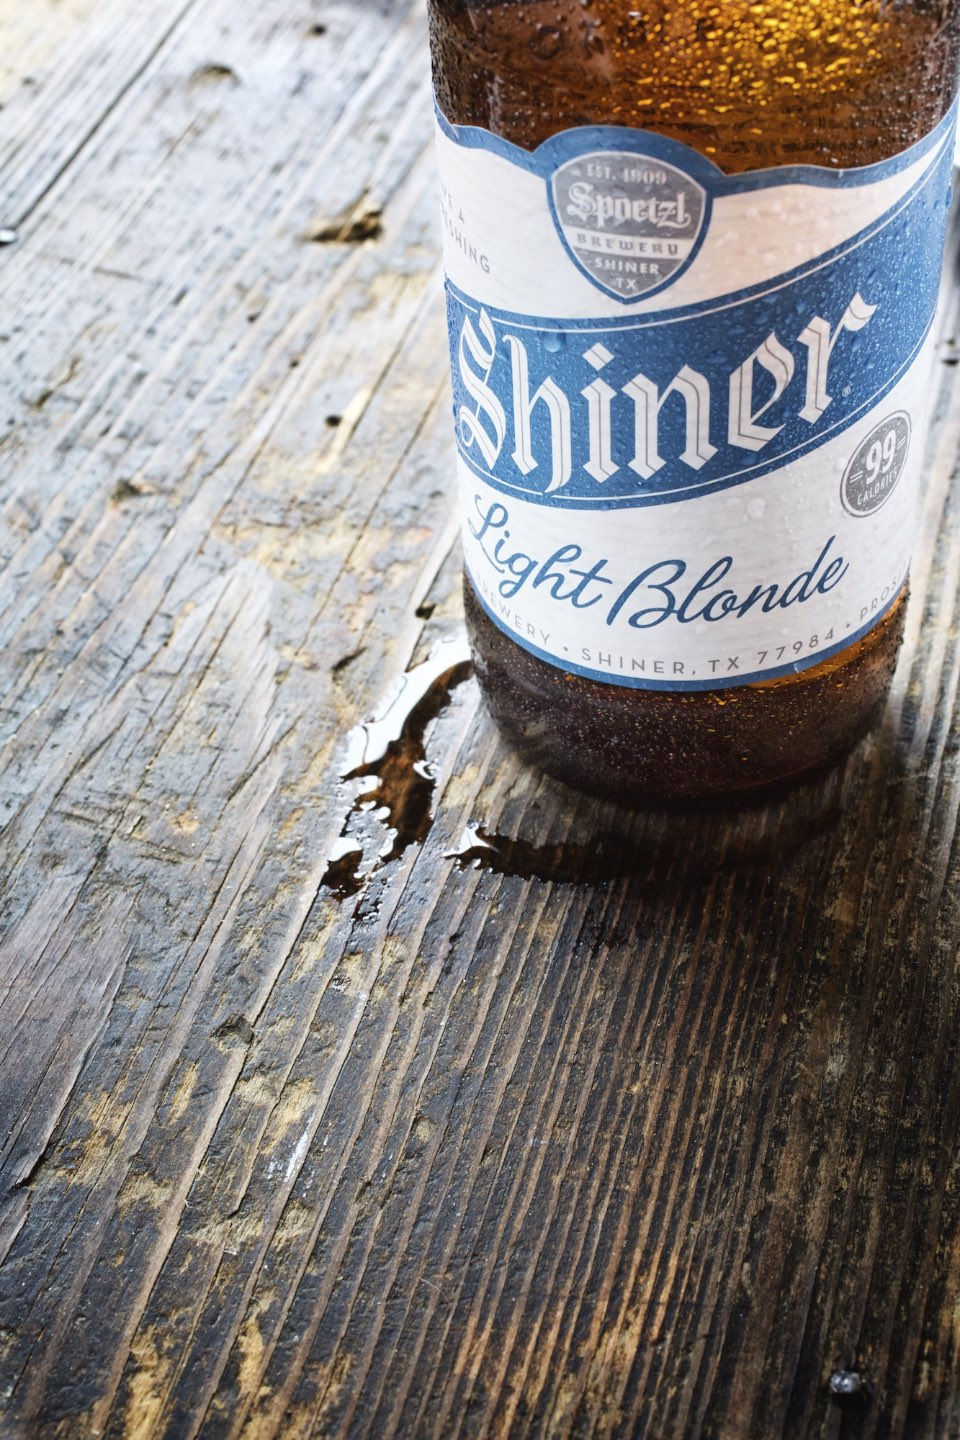 Cold Shiner beer leaving a ring of condensation on a wood table.